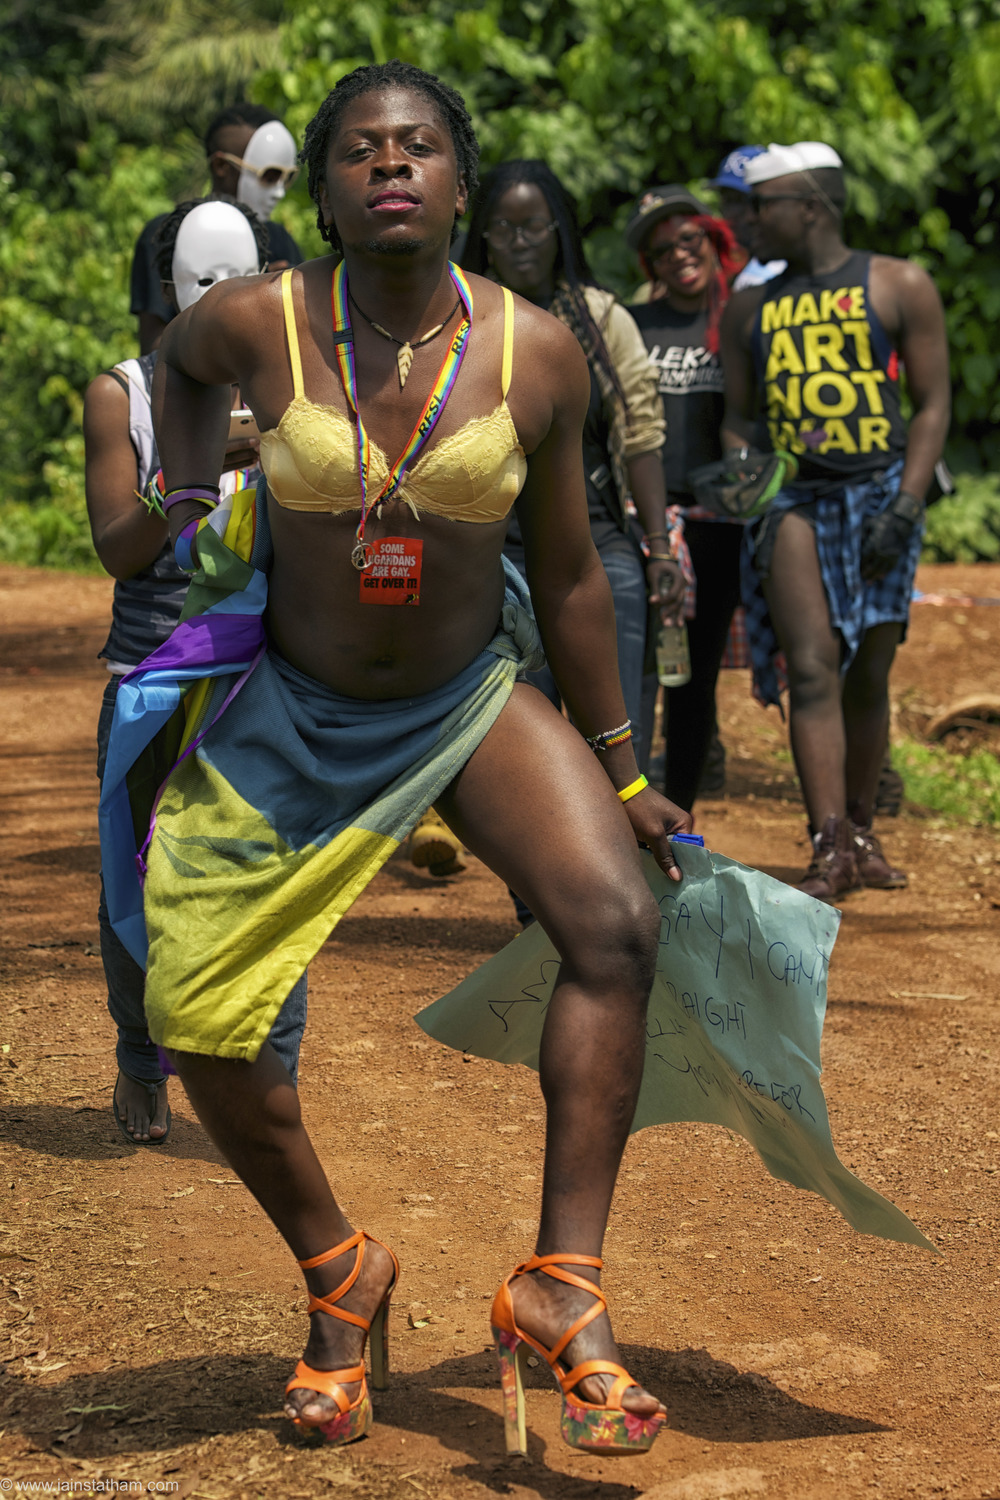 ug - entebbe - pride - colour-22.jpg